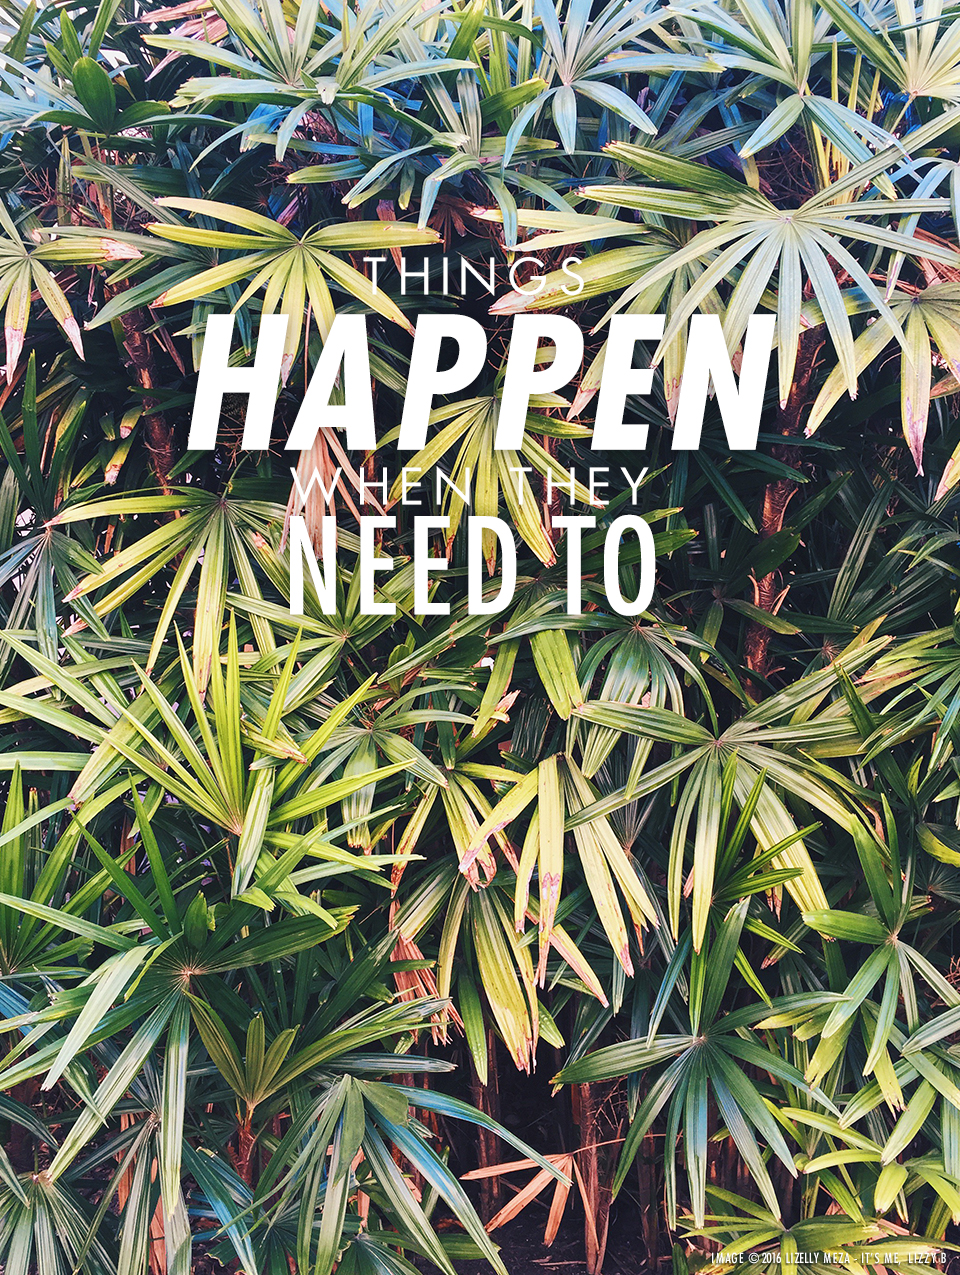 Things Happen When They Need To // It's Me, Lizzy B - Musings on Life, Business, & The Pursuit of Everyday Joy // Personal blog of Lizelly Meza from Lizzy B Loves